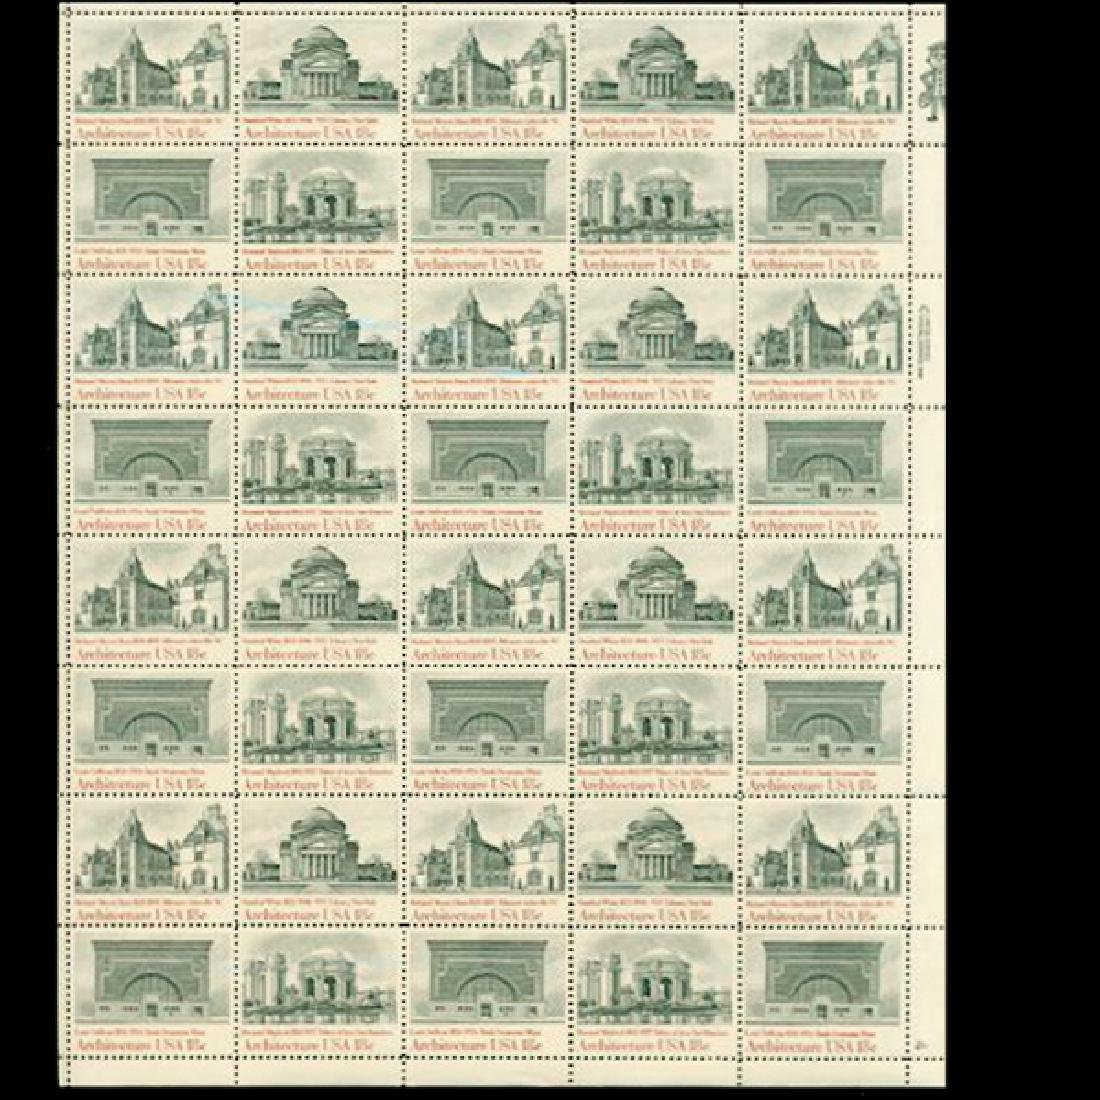 1981 US Sheet 18c American Architecture Issue Stamps